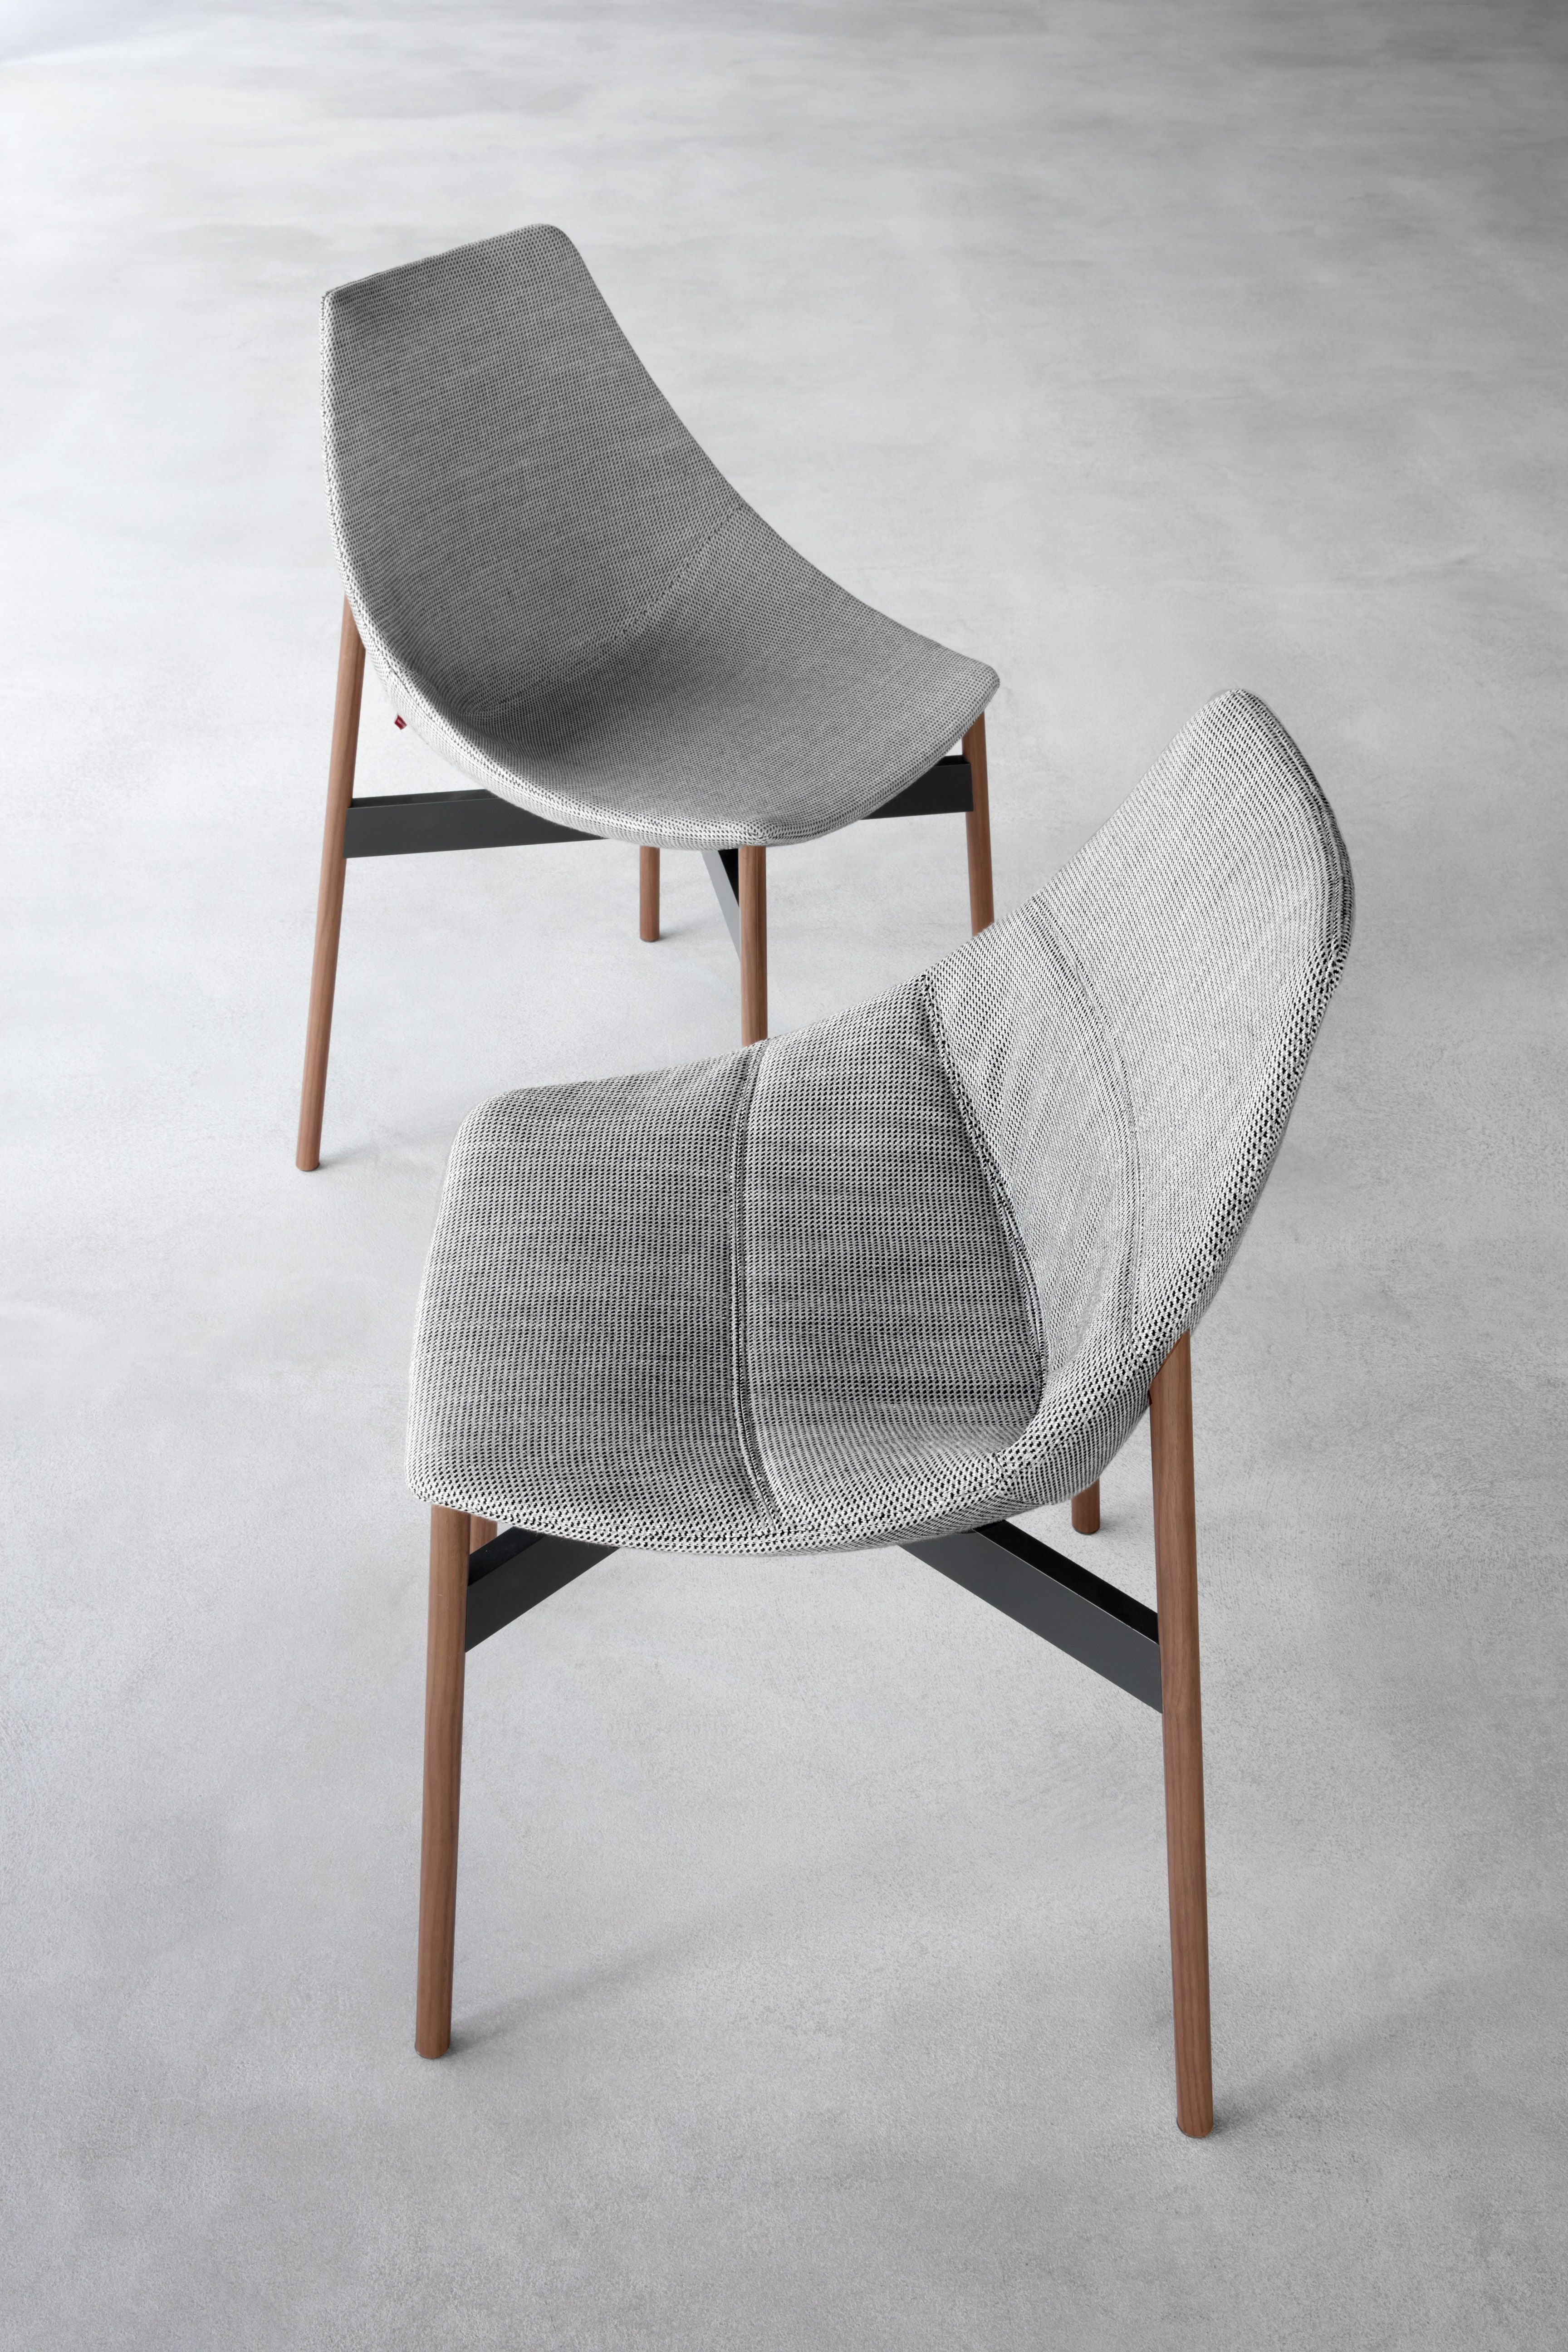 Gamma Eetkamerstoelen Gamma Chairs With Fixed And Removable Fabric Cover Tubolar Walnut